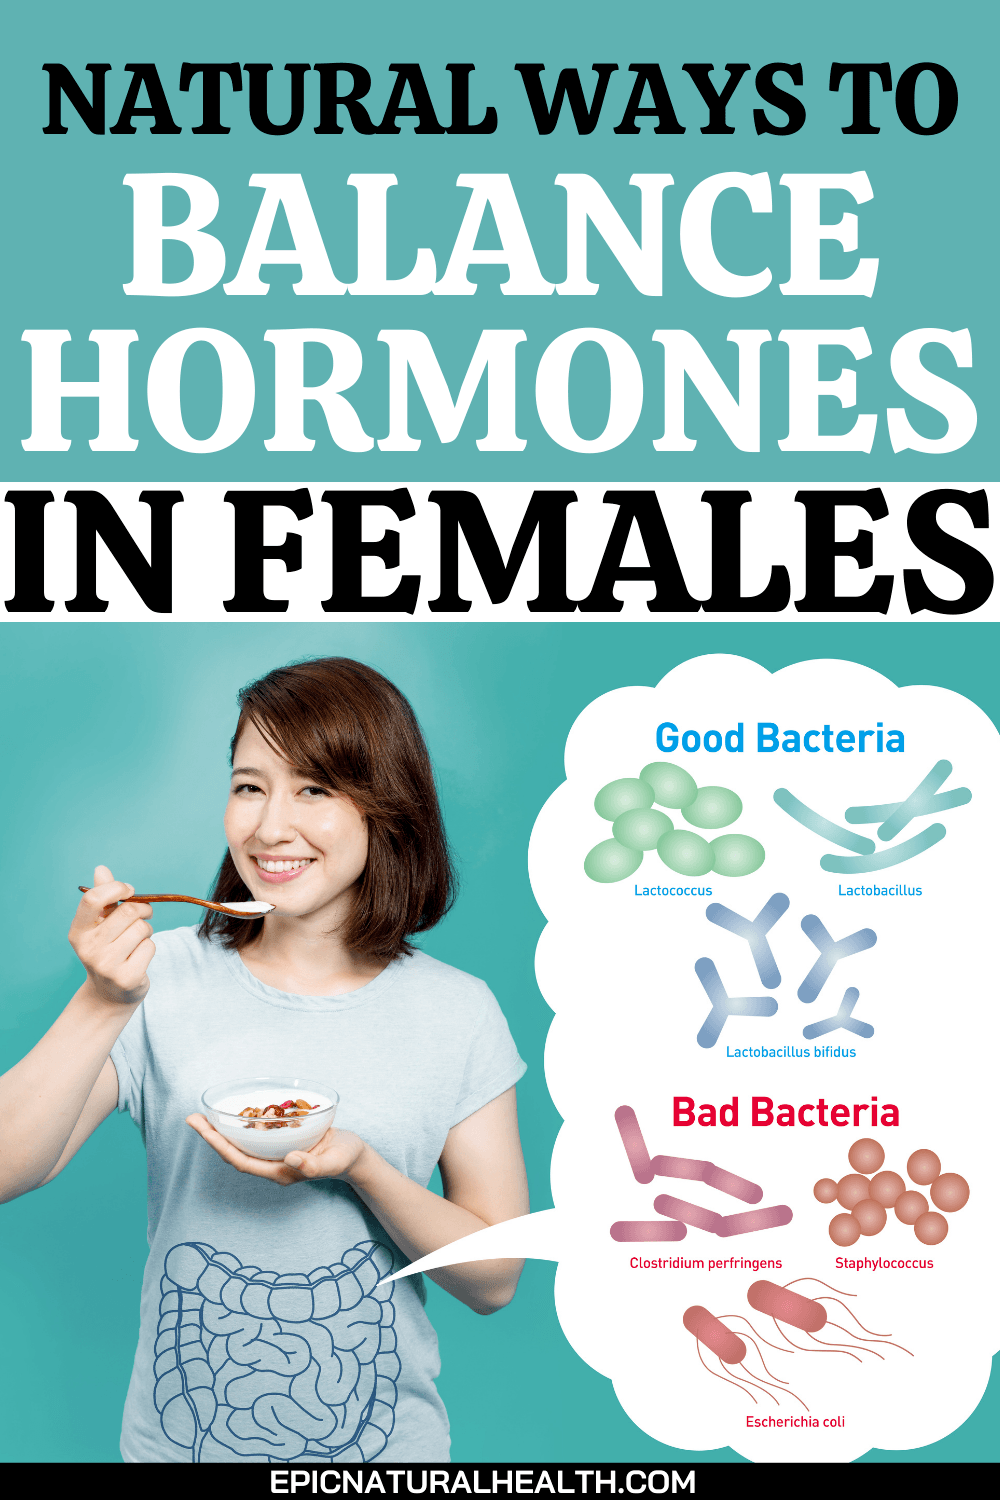 Natural Ways to Balance Hormones in Females